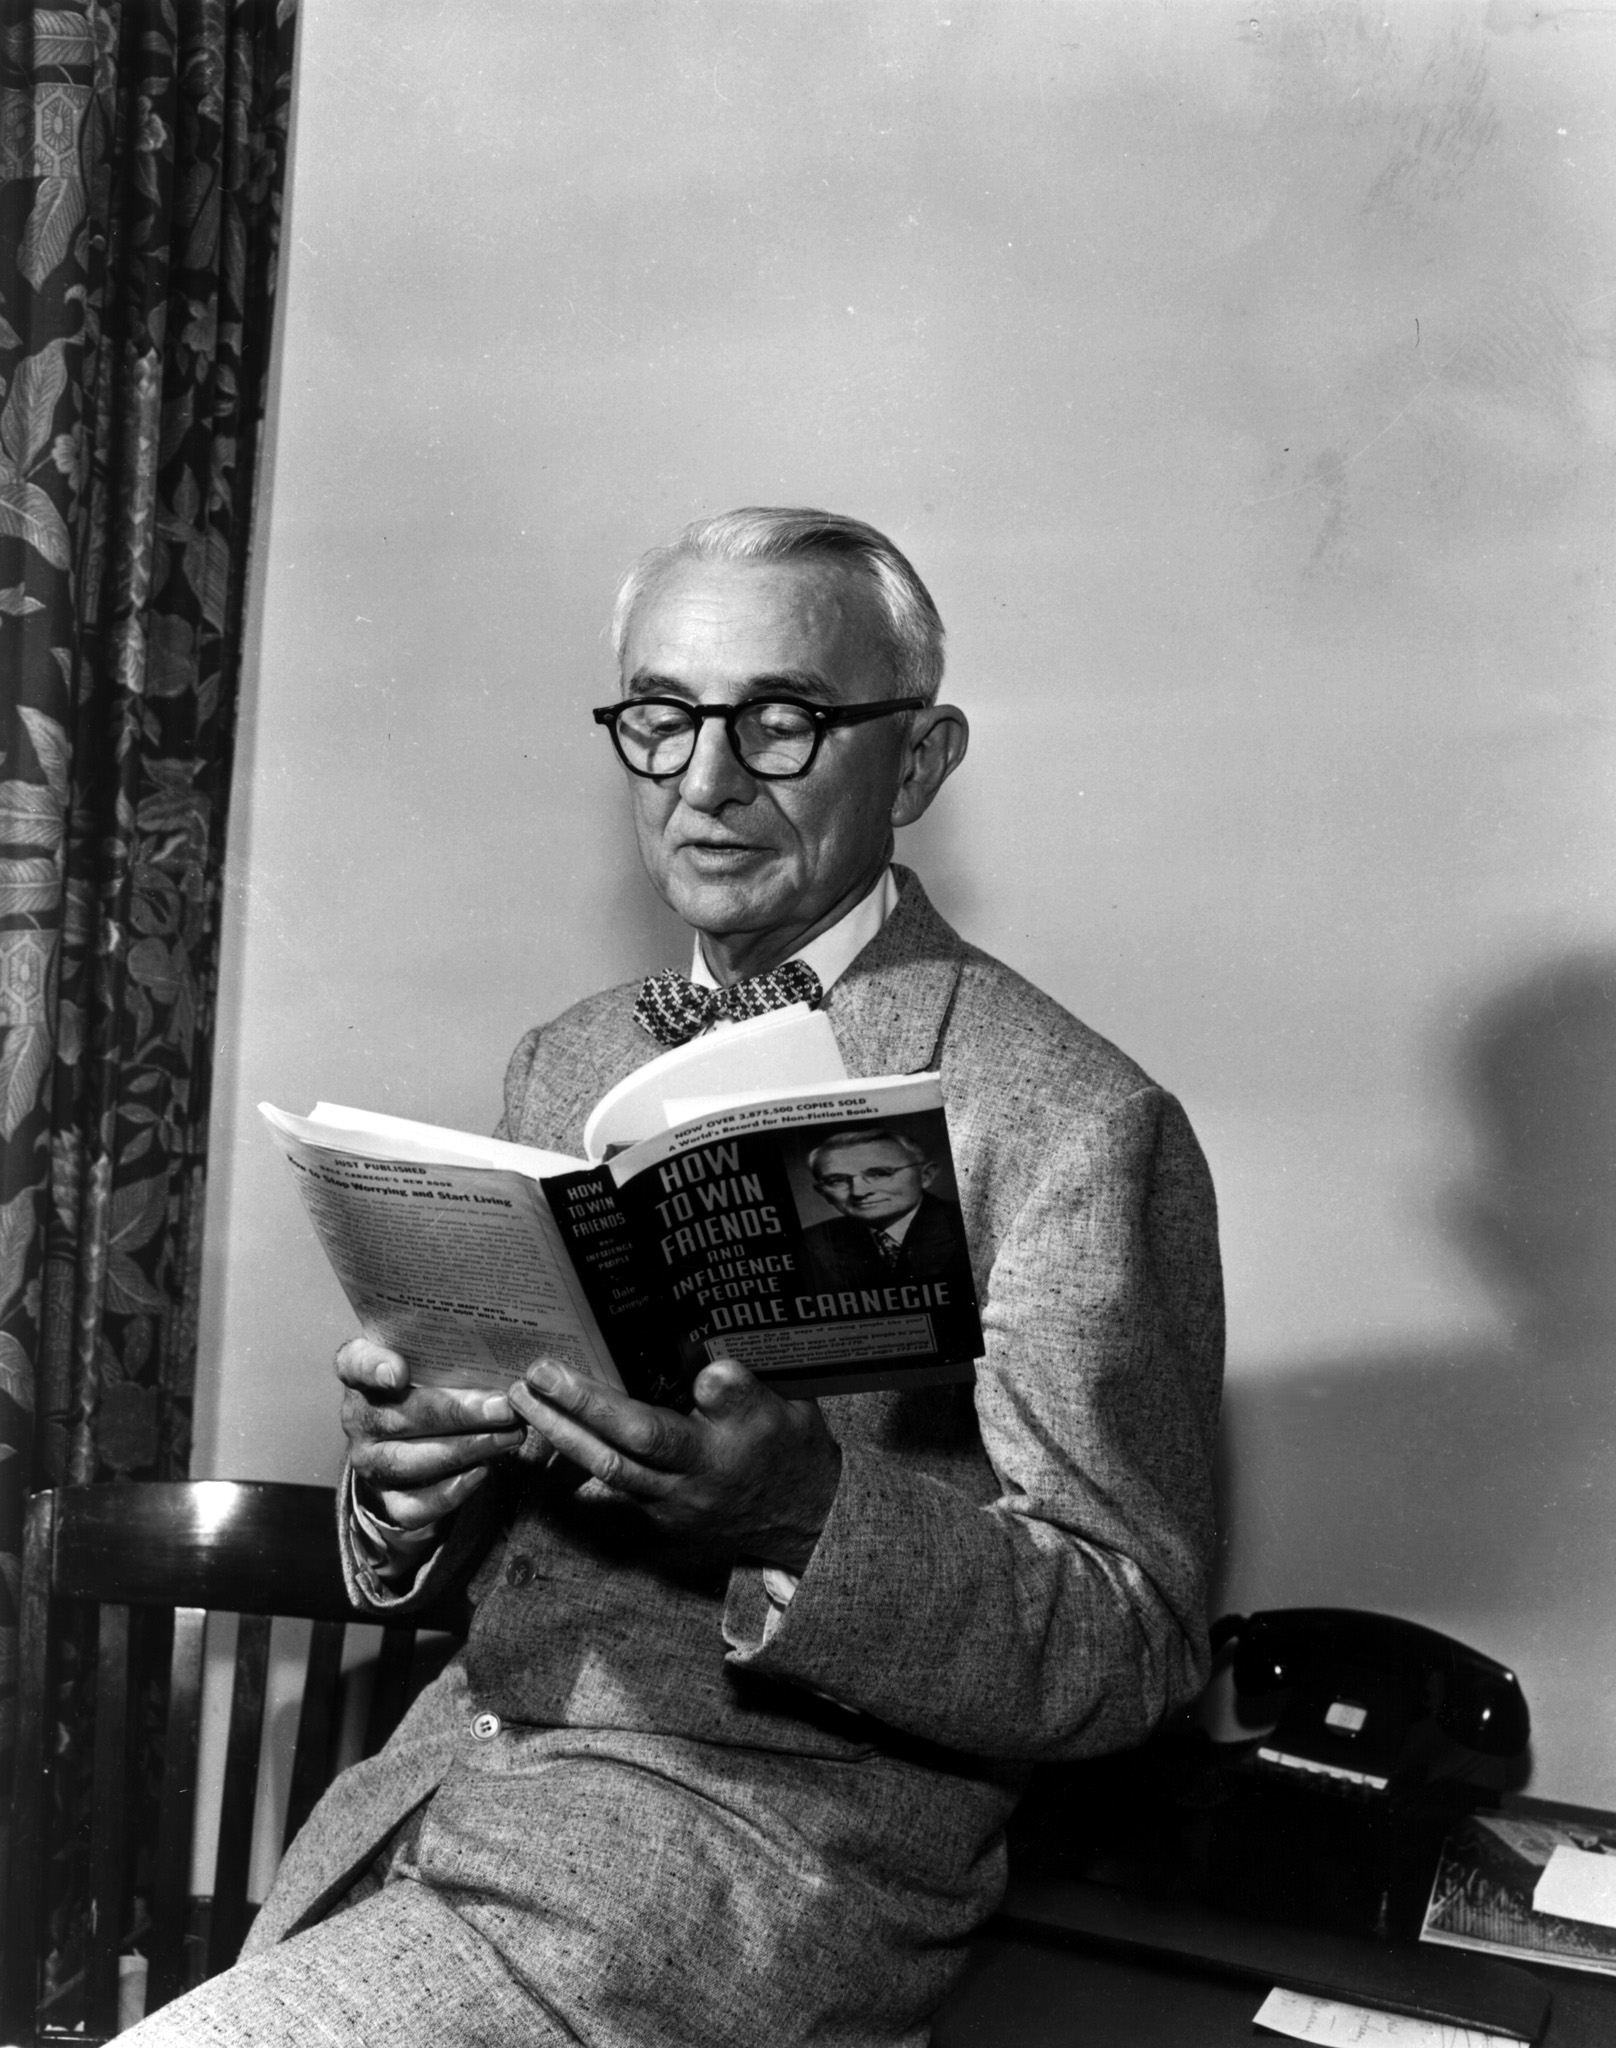 Dale Carnegie at the National Convention of the Sale Carnegie Institute of Effective Speaking and Human Relations on July 7, 1955.